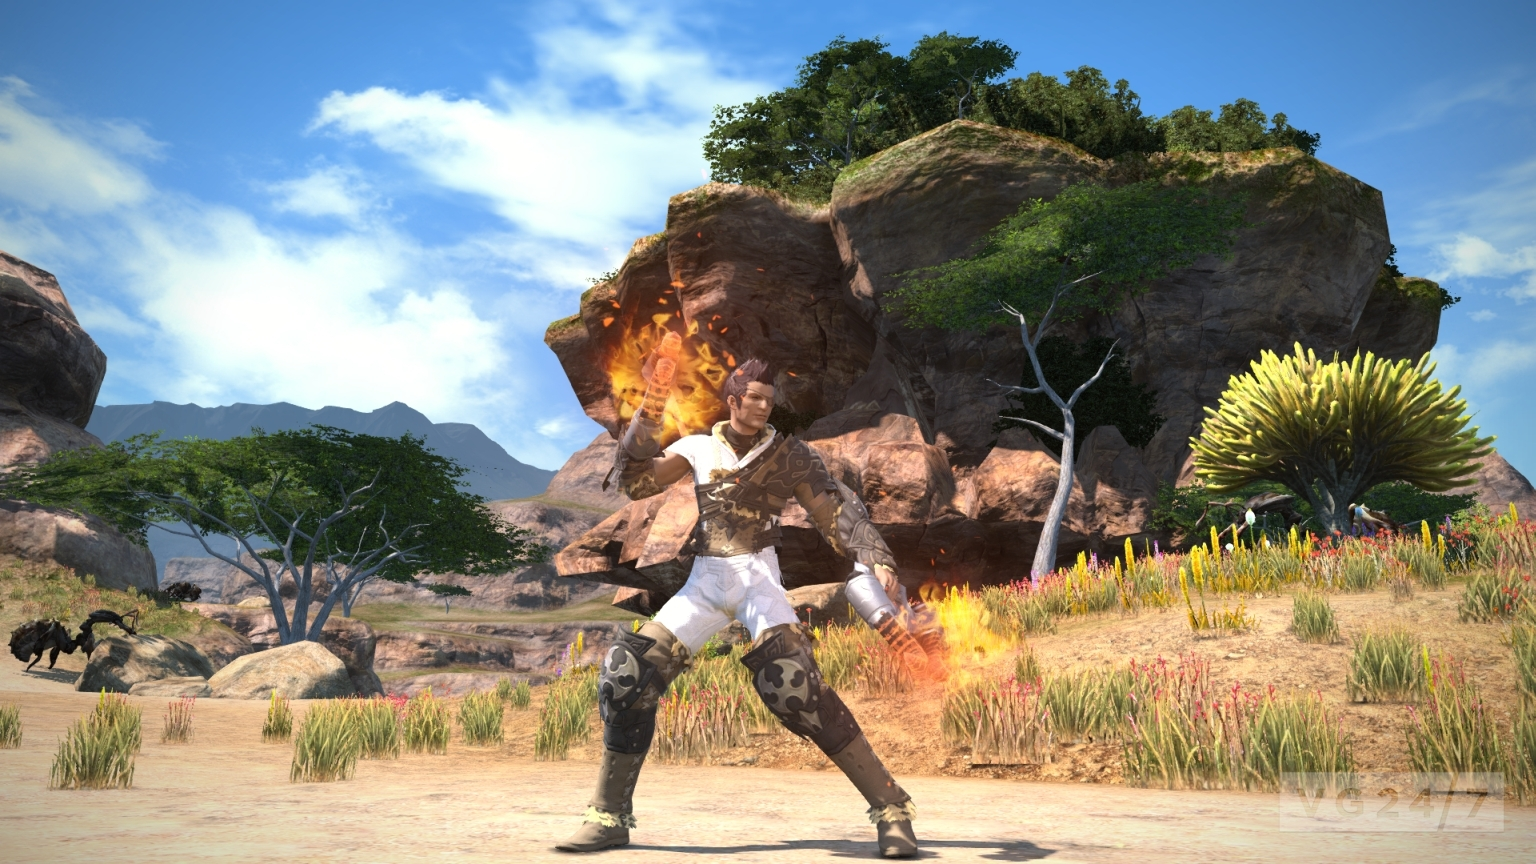 Ff14 A Realm Reborn Launching In Summer June Beta Lets Ps3 Users